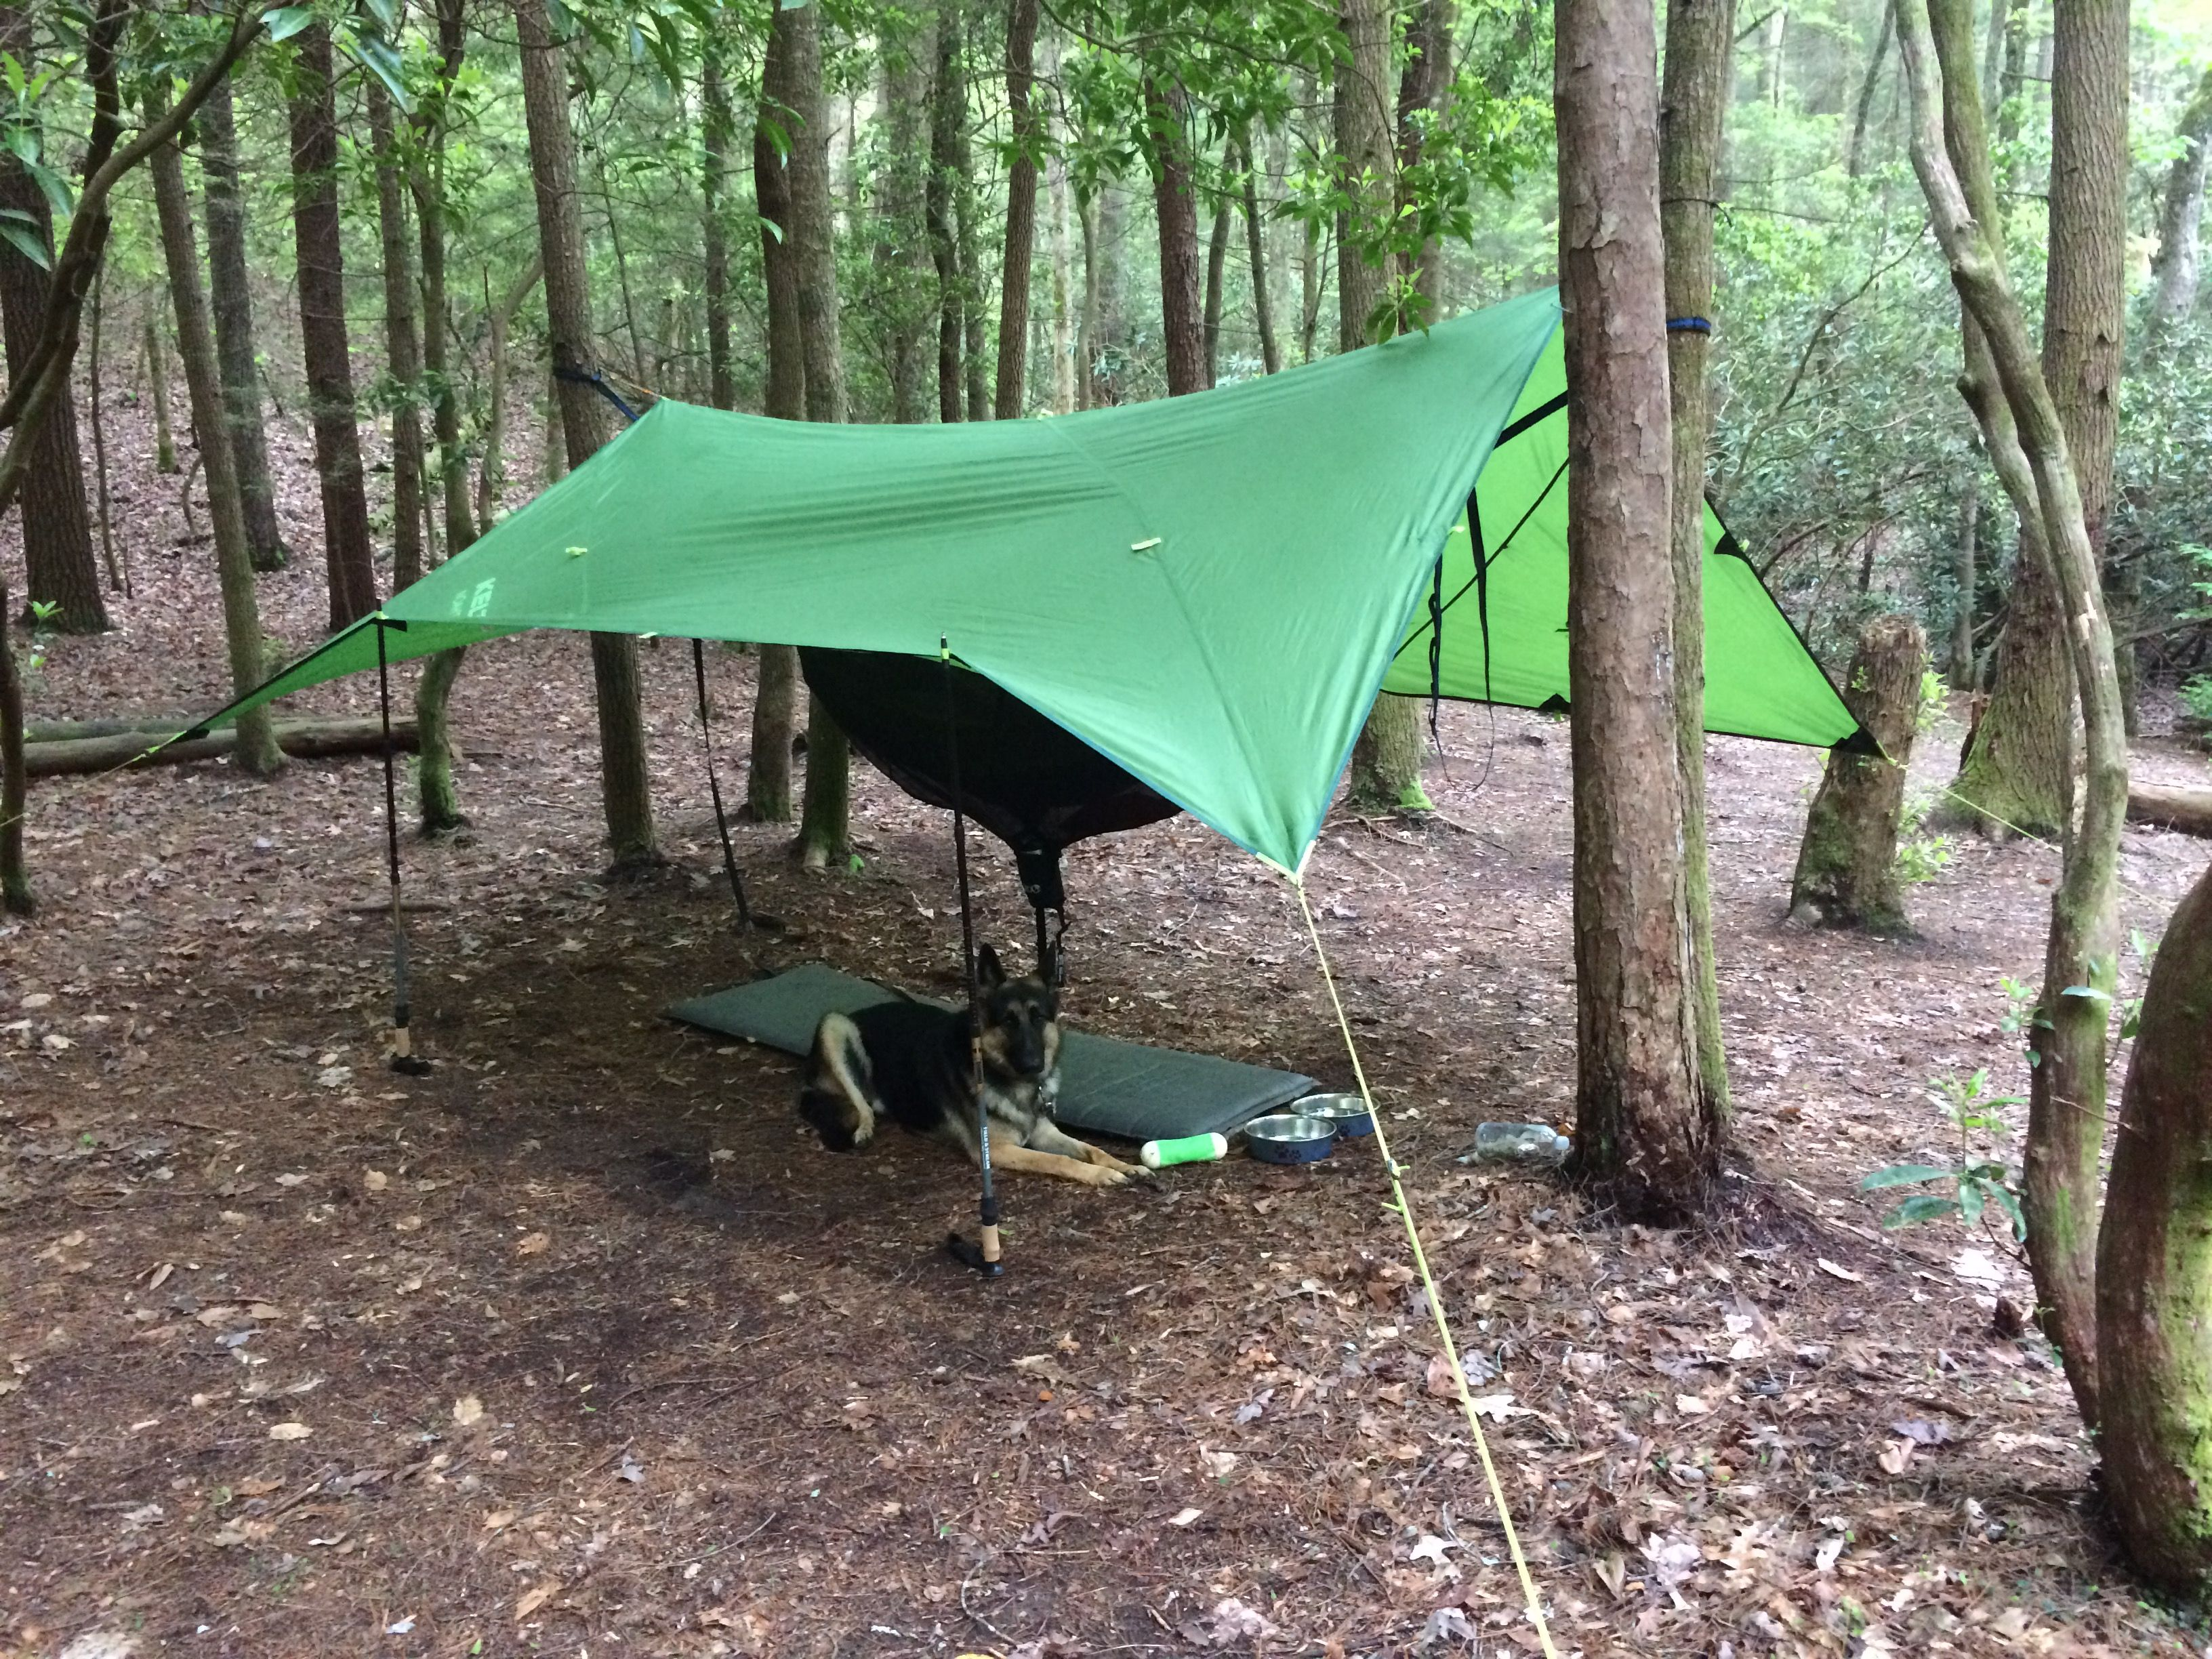 trail and connect fcac orange the tr a hiking on thru tent tentsile appalachian with hammock tents tree